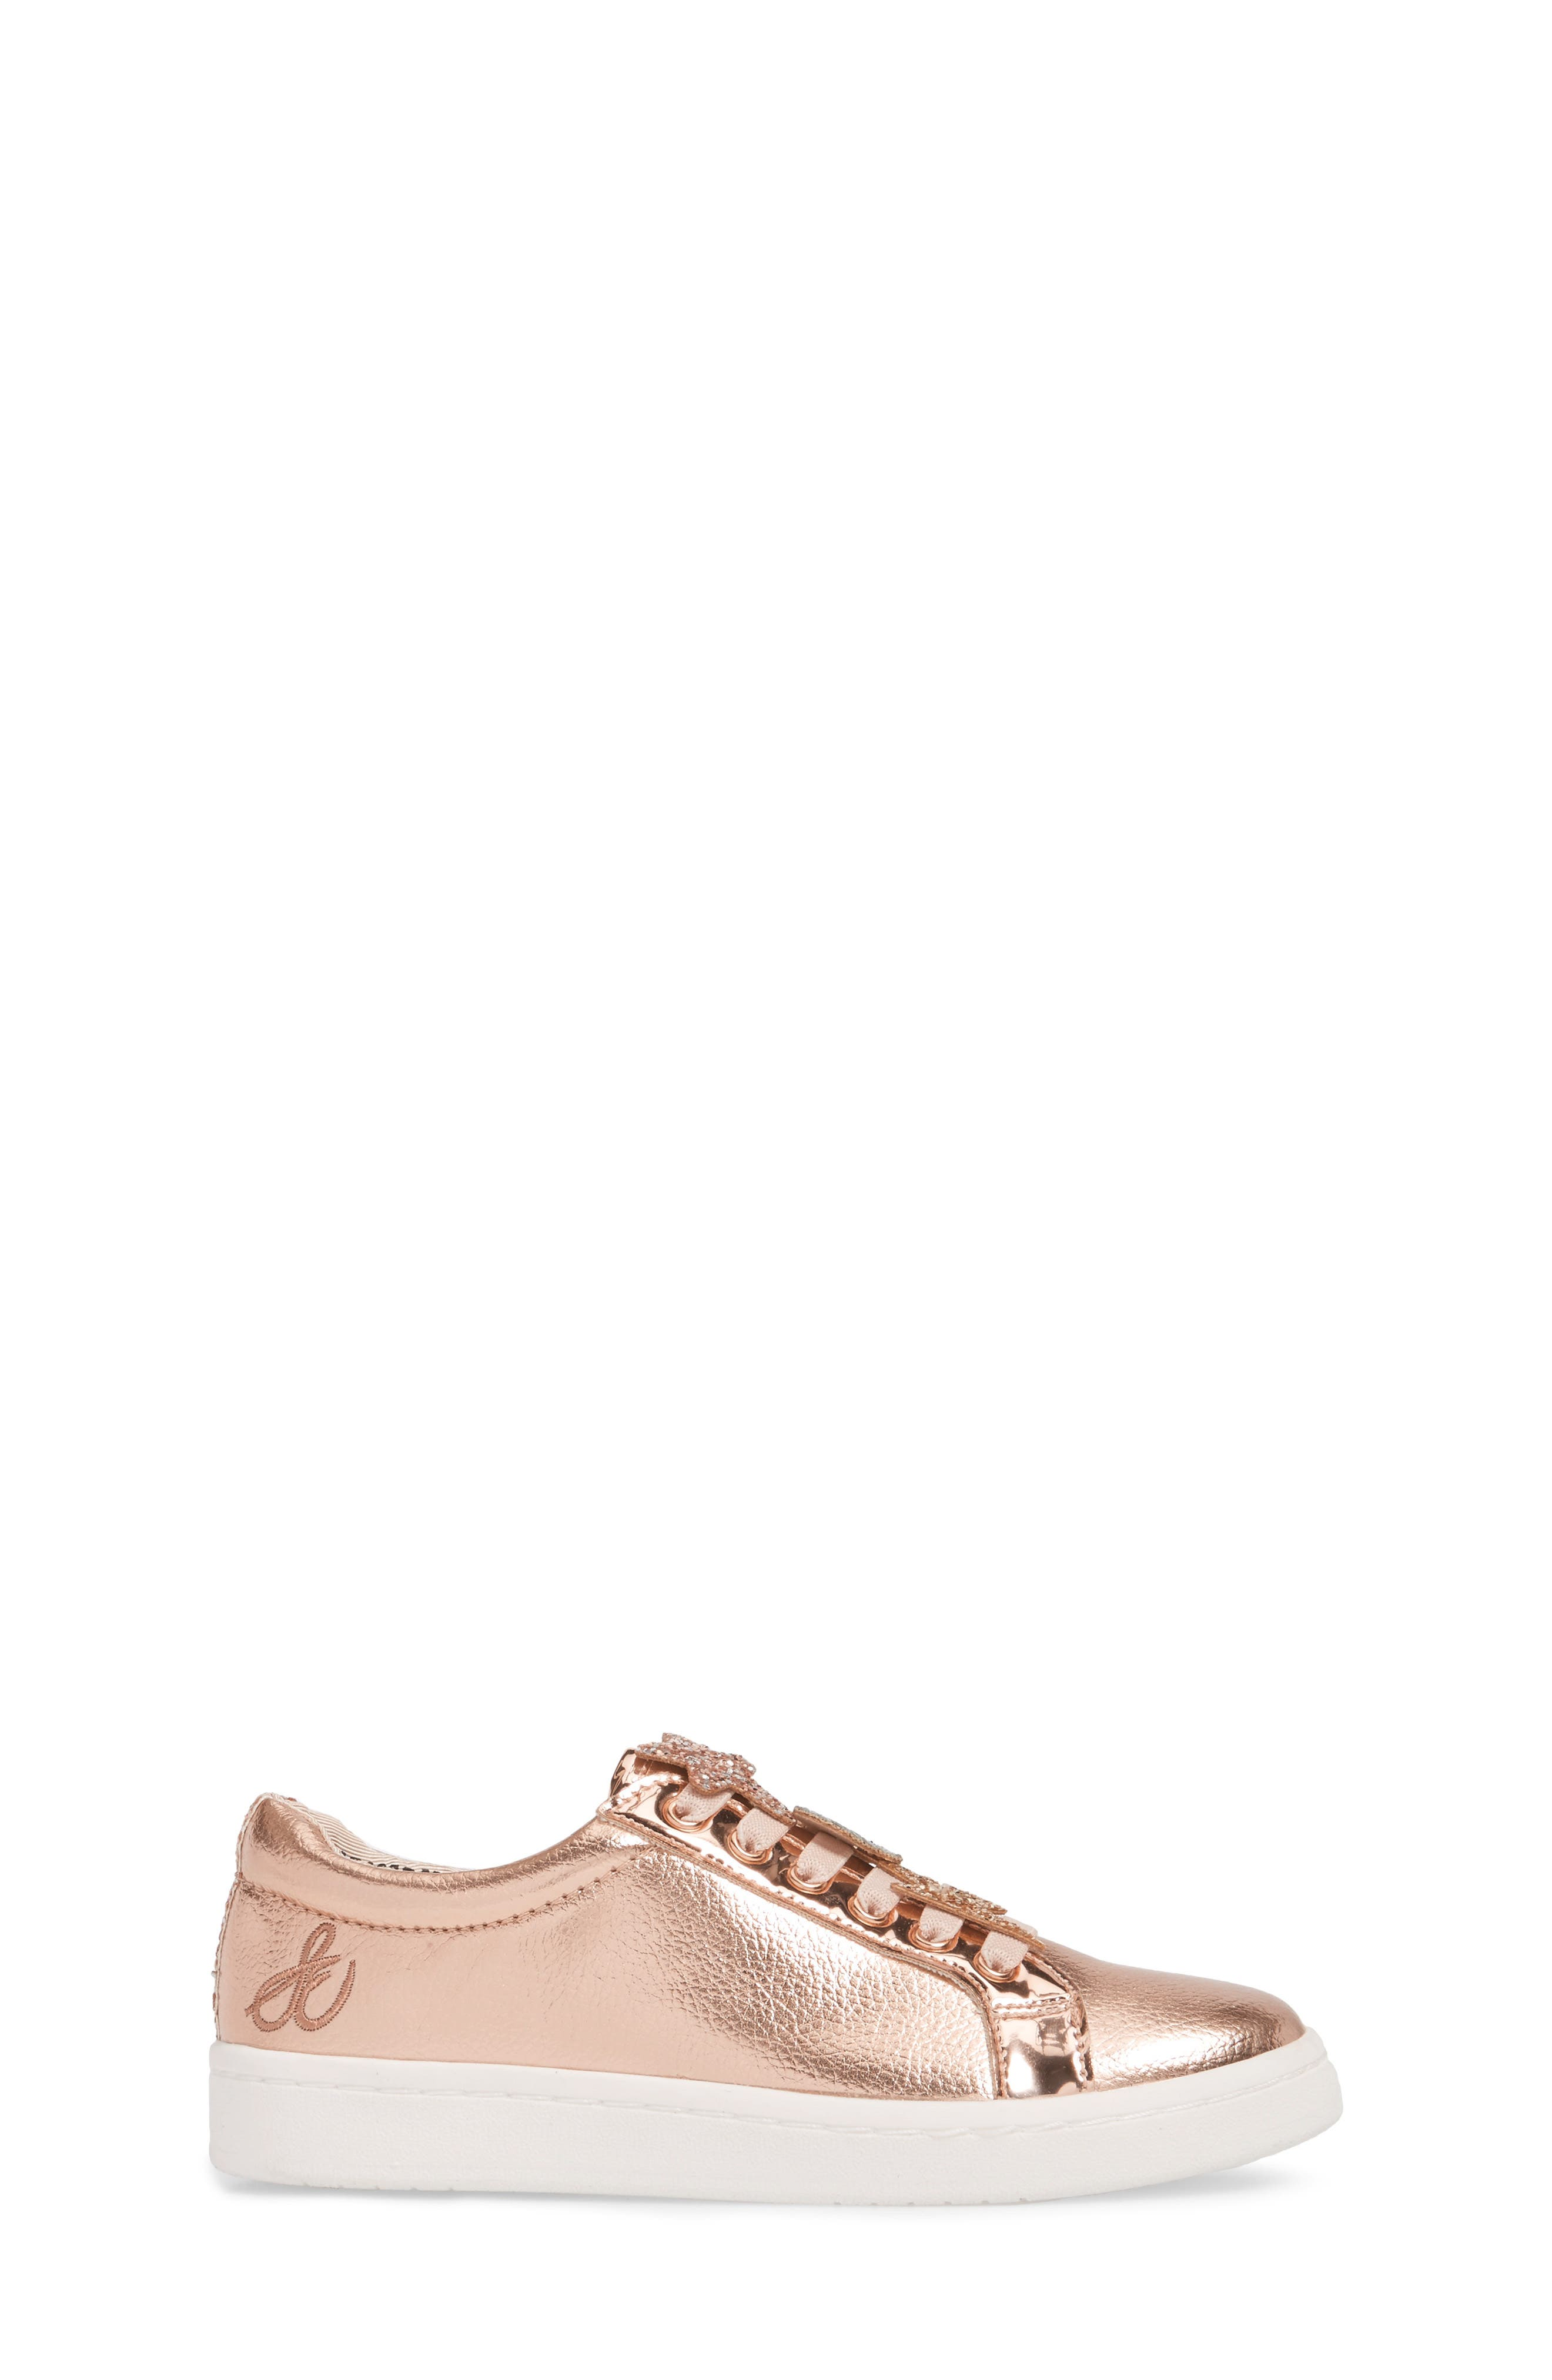 Blane Sammie Slip-On Sneaker,                             Alternate thumbnail 3, color,                             Rose Gold Faux Leather